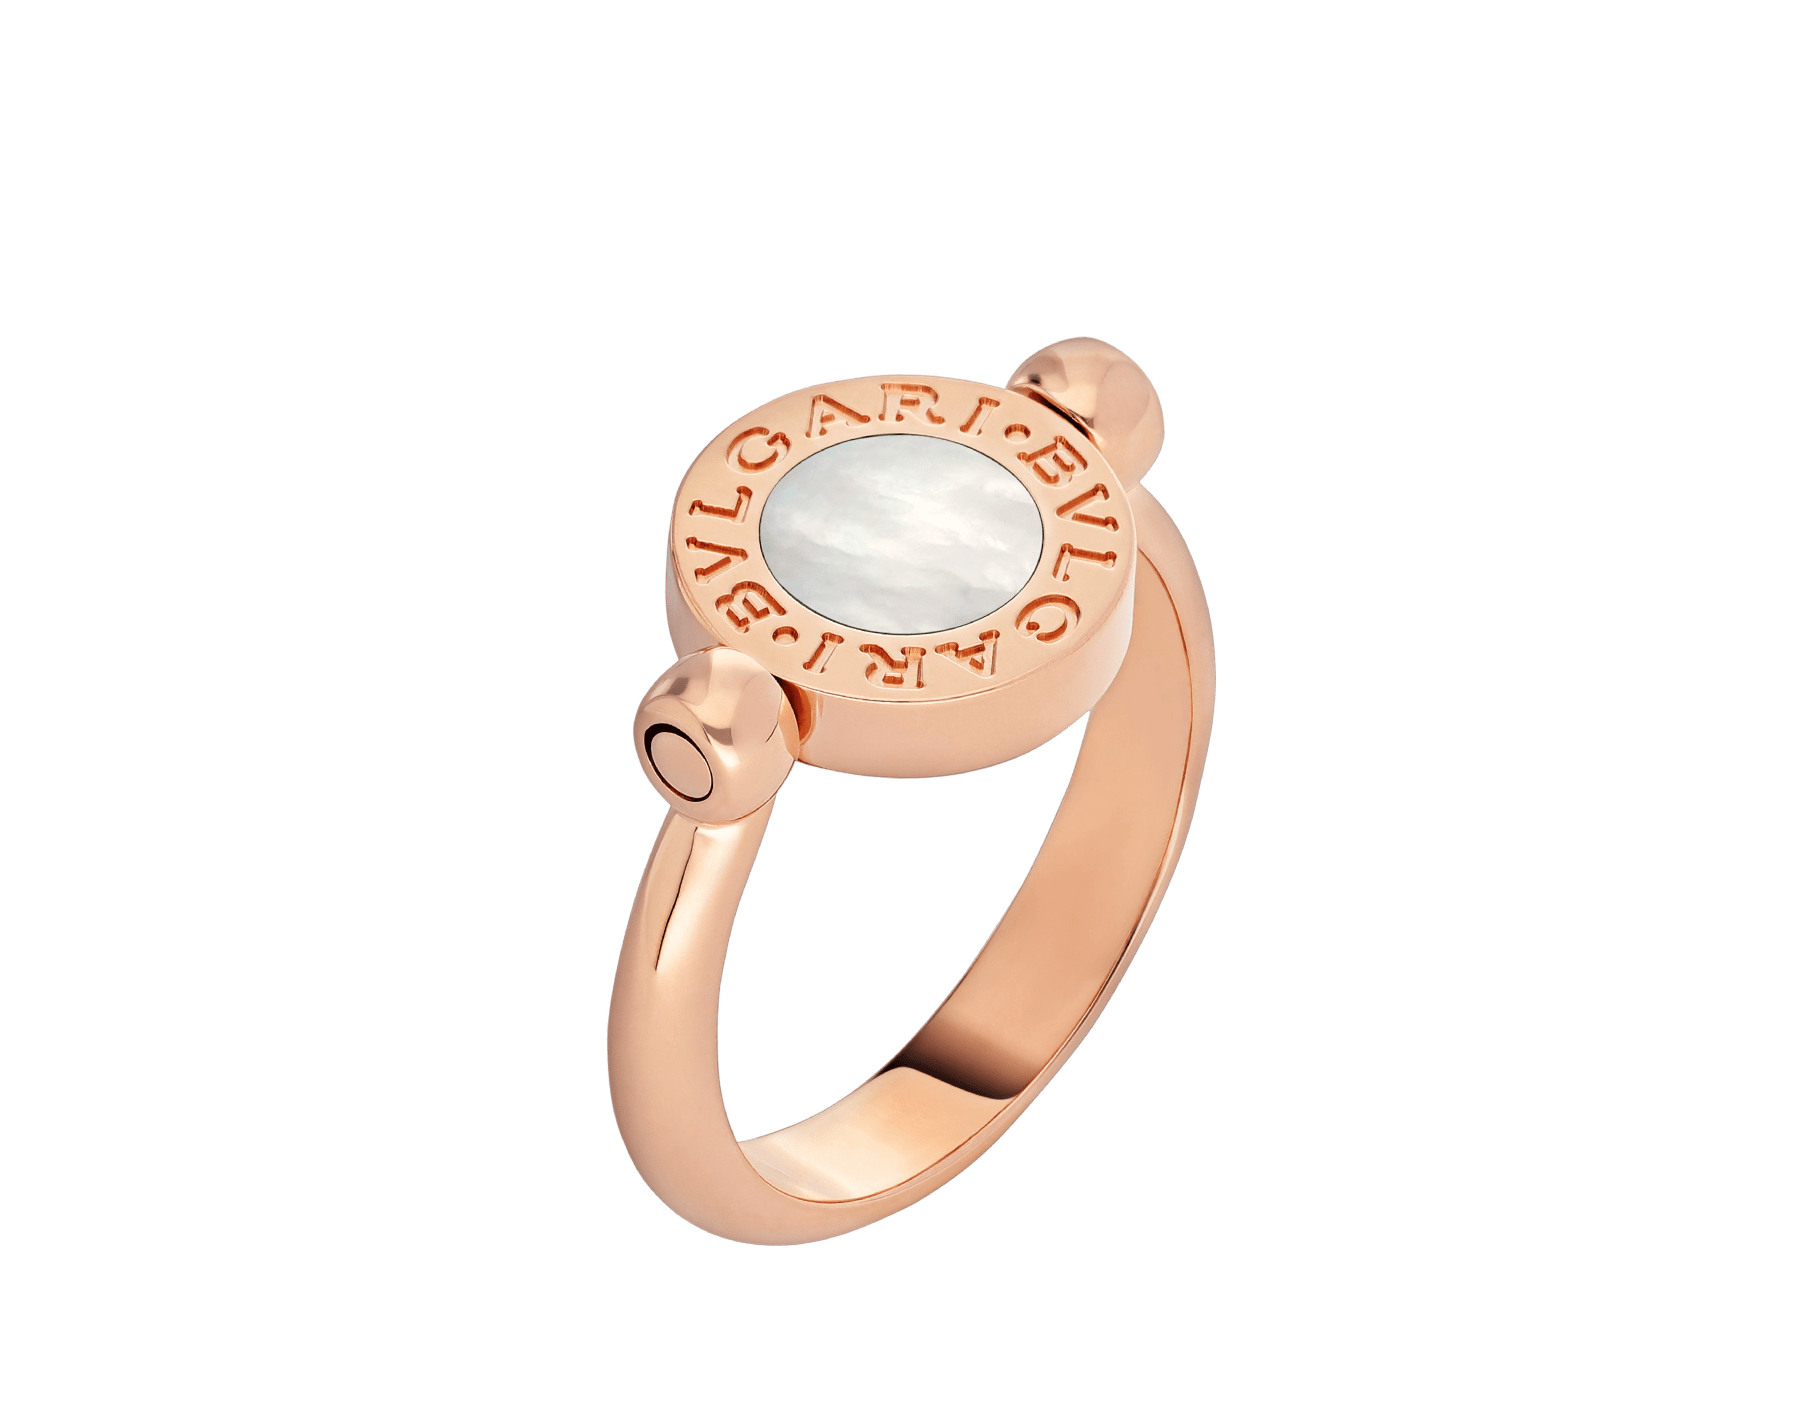 BVLGARI BVLGARI 18 kt rose gold flip ring set with mother-of-pearl and onyx AN856192 image 3